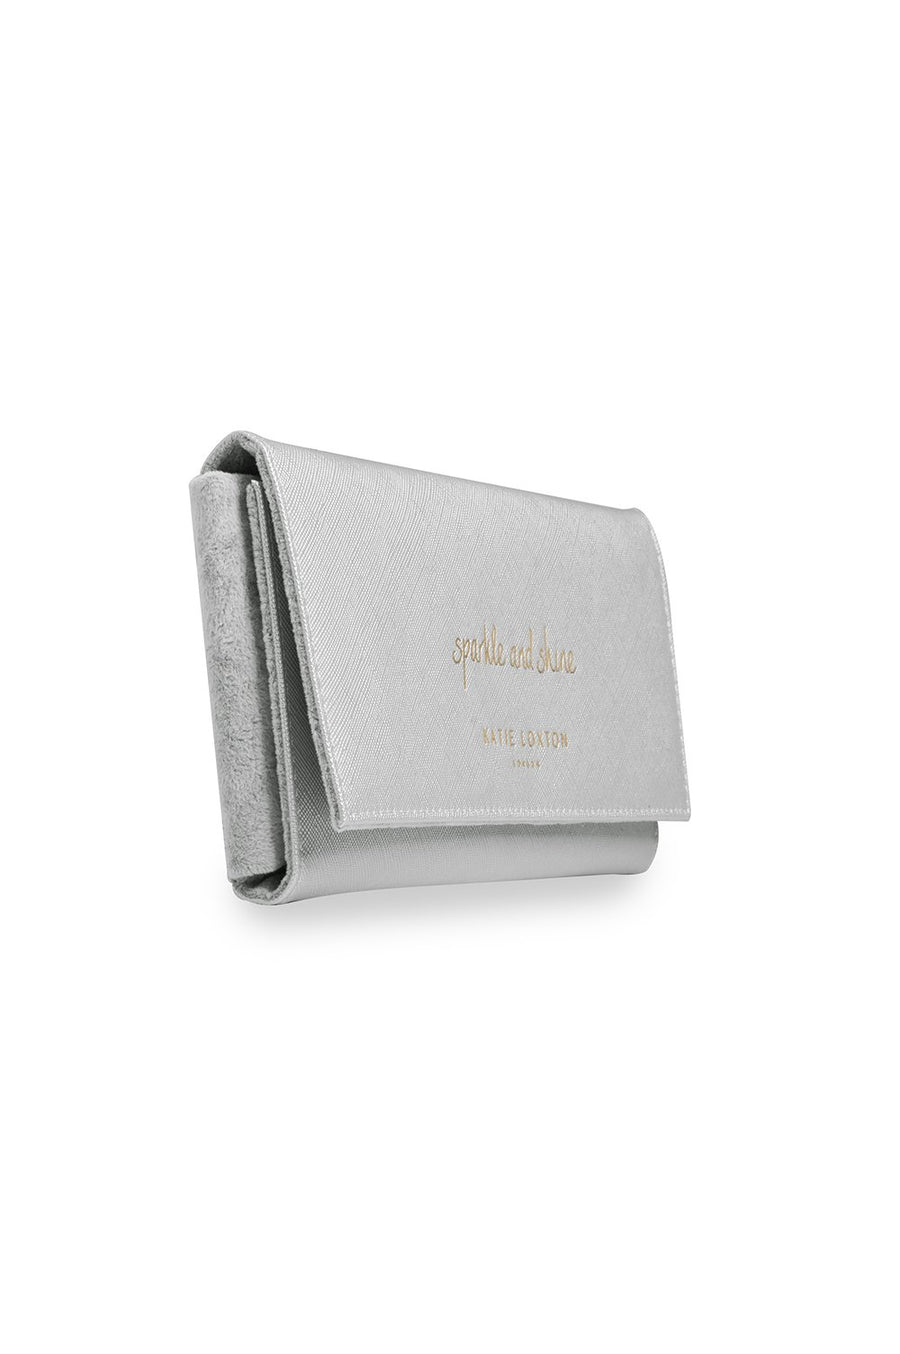 Katie Loxton Sparkle and Shine Jewellery Roll